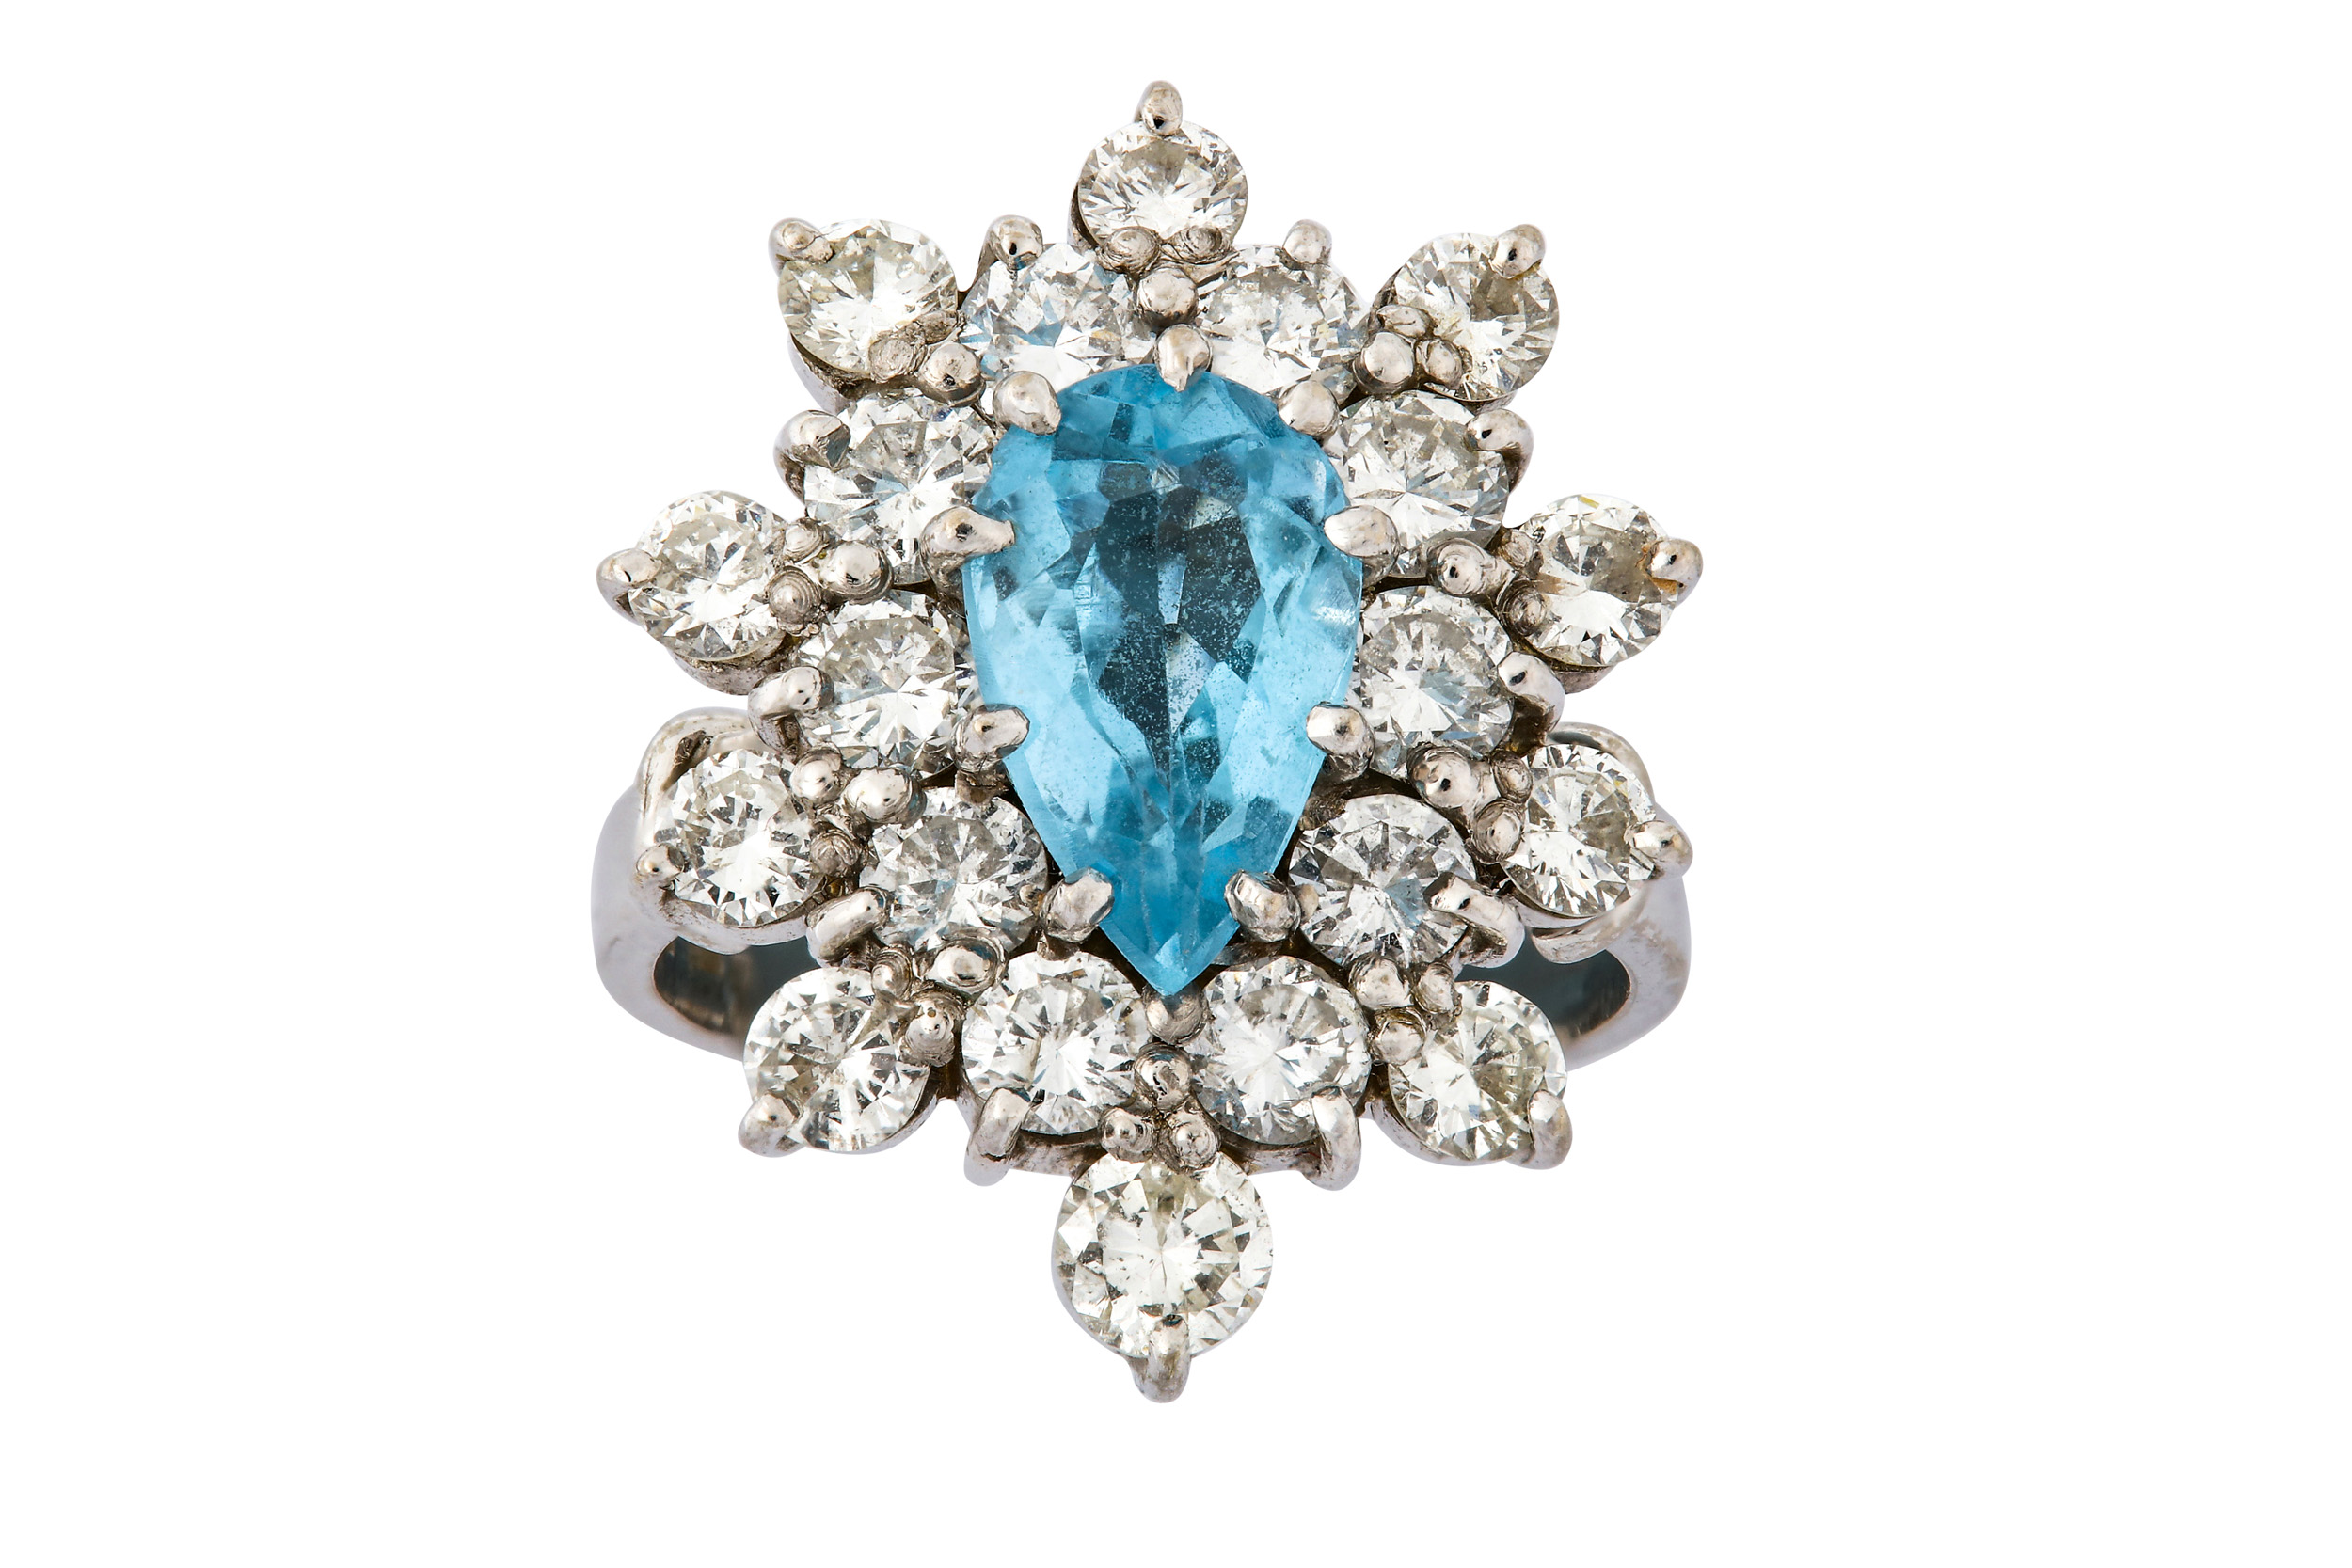 Lot 29 - A diamond and blue topaz cluster ring